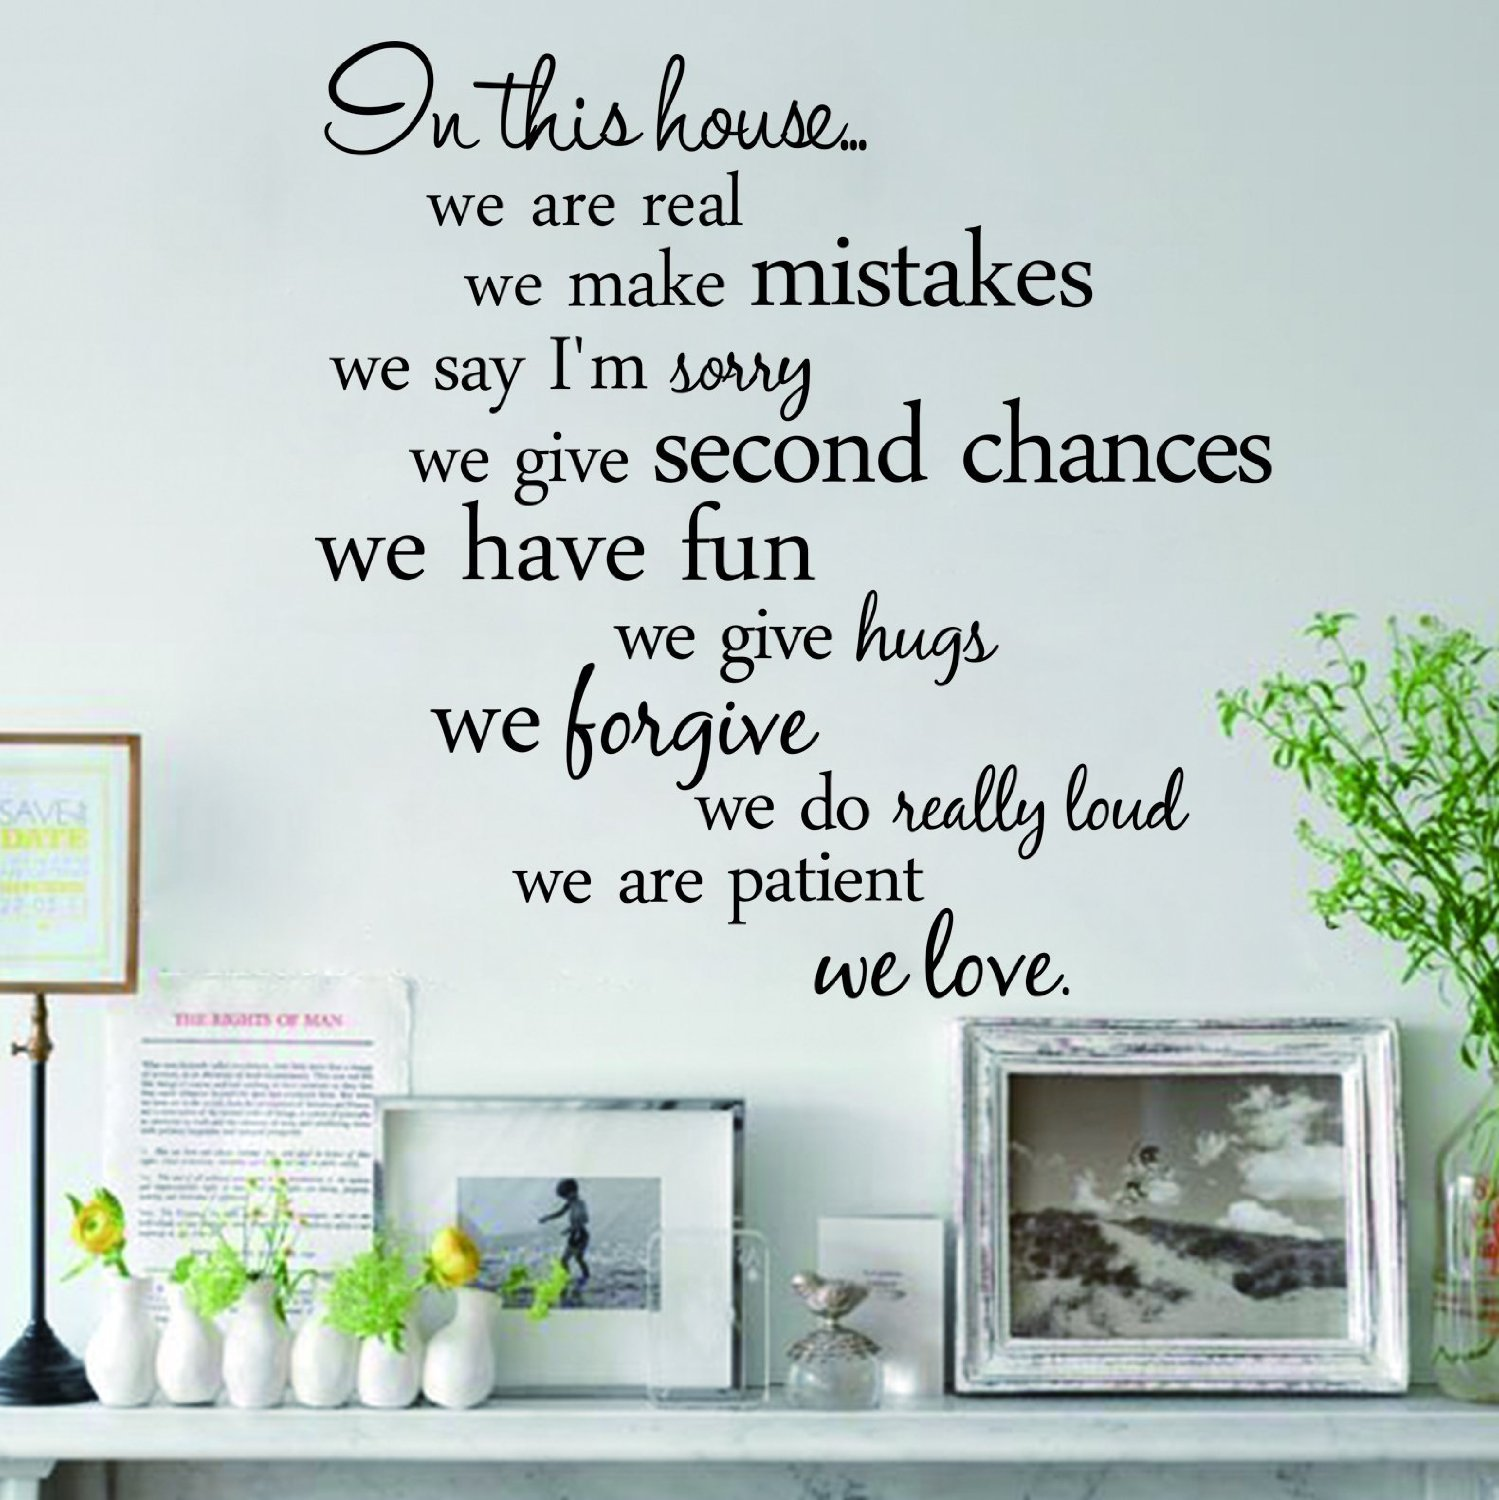 Newsee decals in this house we are real we make mistakes we say i newsee decals in this house we are real we make mistakes we say im sorry we give second chances we have fun we give hugs we forgive we do really loud we amipublicfo Choice Image